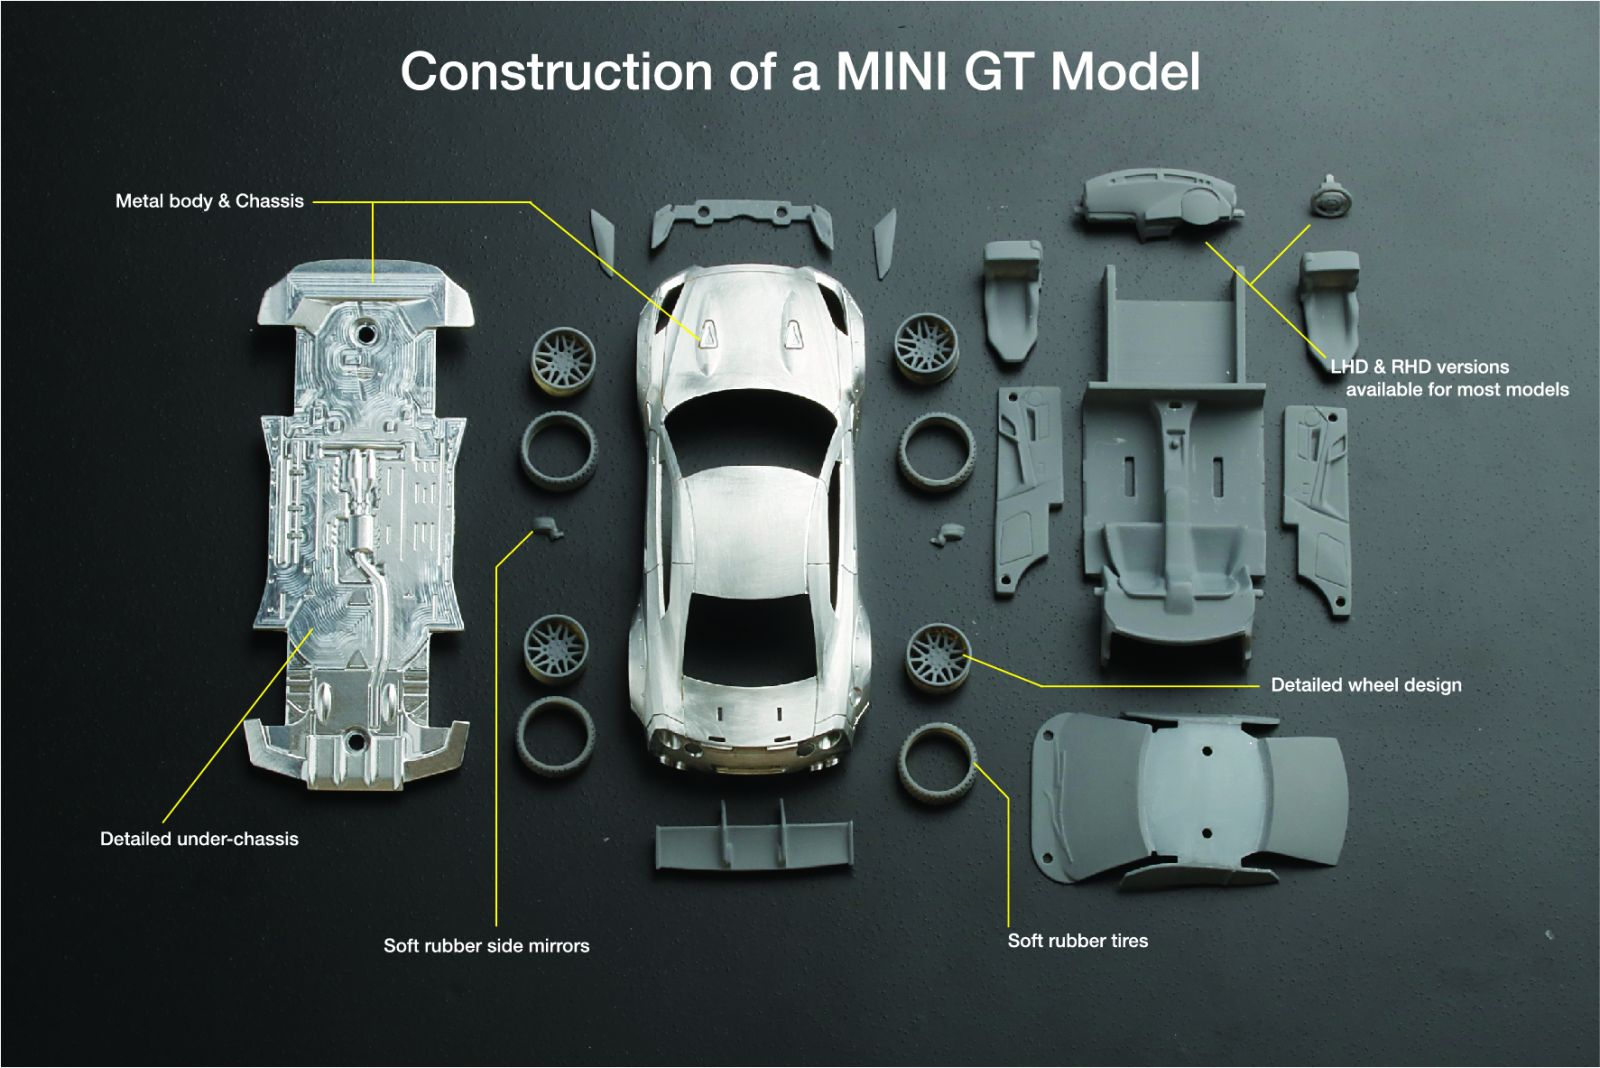 Construction of a MINI GT Model